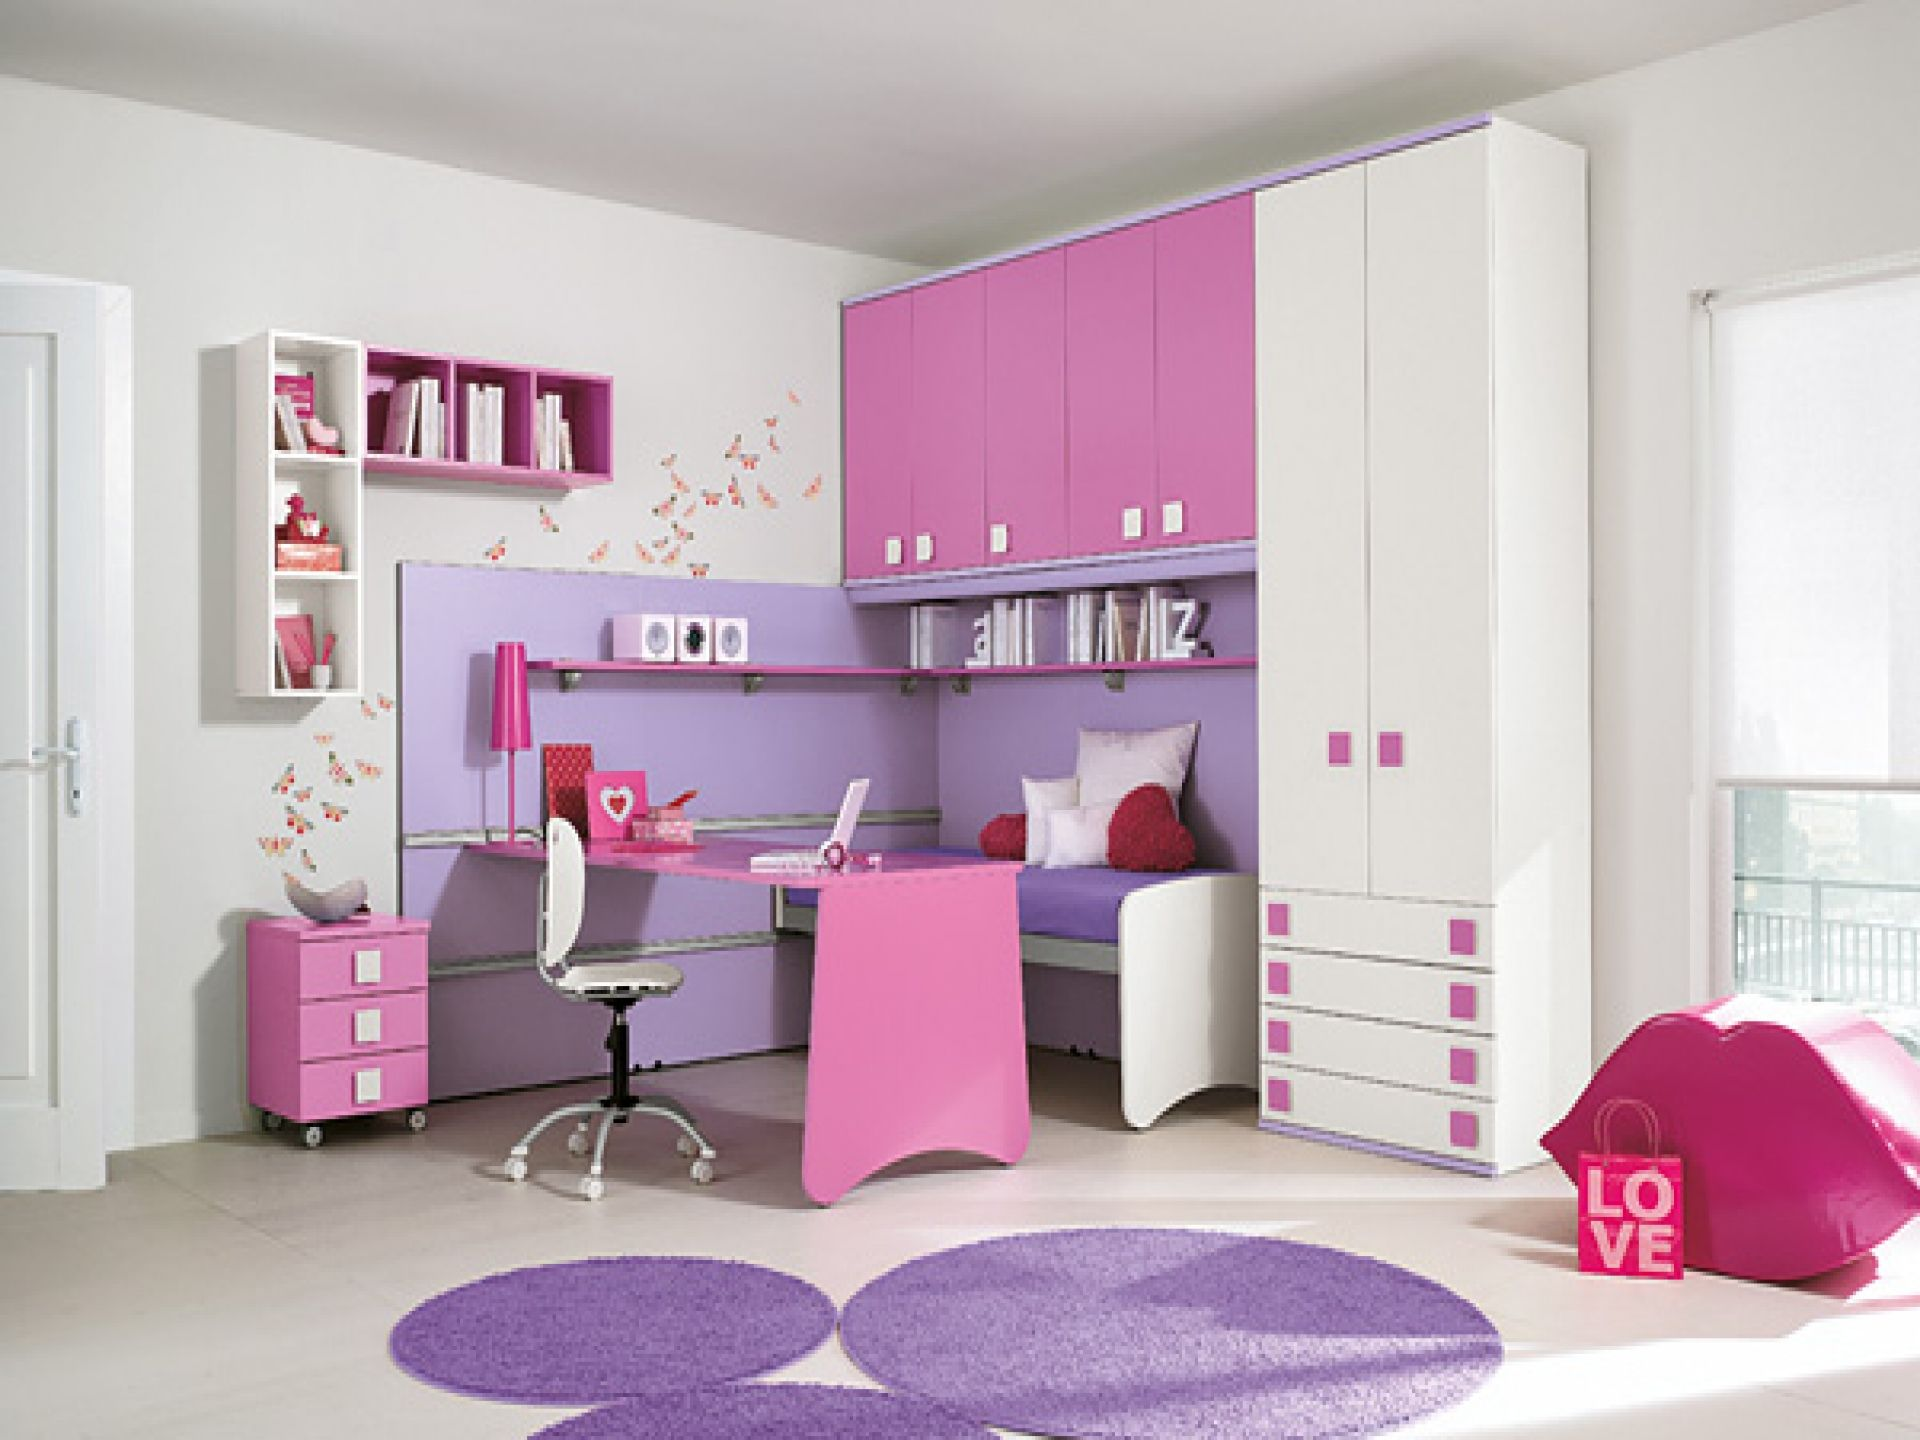 Fabulous Bedroom Designs In Pink And Purple Color